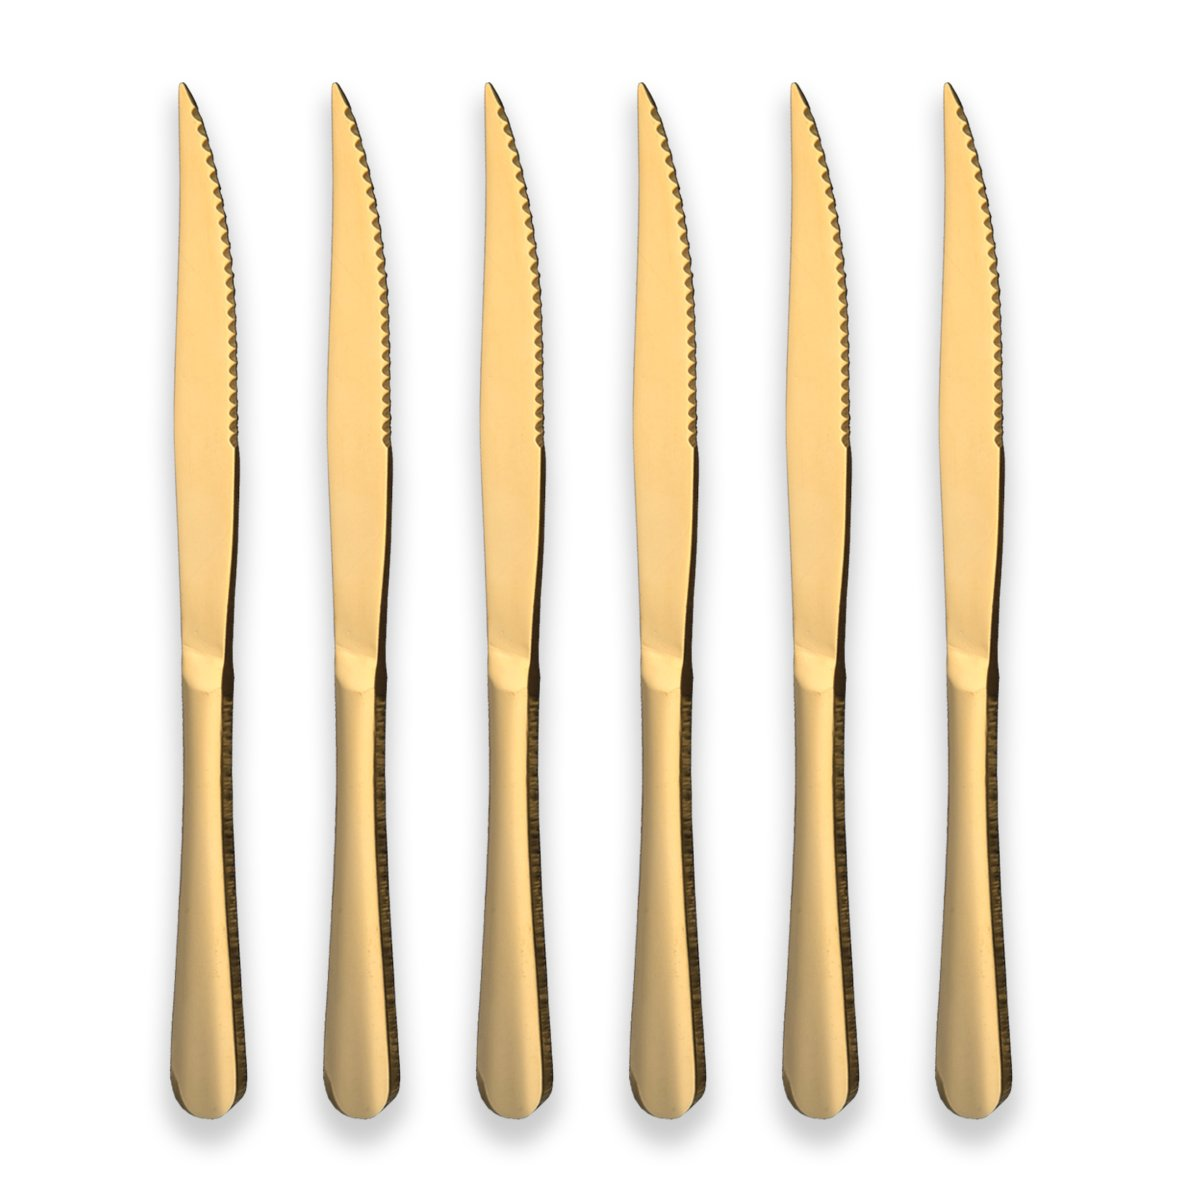 Berglander Titanium Gold Plated Stainless Steel Steak Knives Golden Color Steak Knife Heavy Duty Steak Knife for Chefs Great For BBQ Weddings Dinners Parties Homes Kitchens Pack of 6